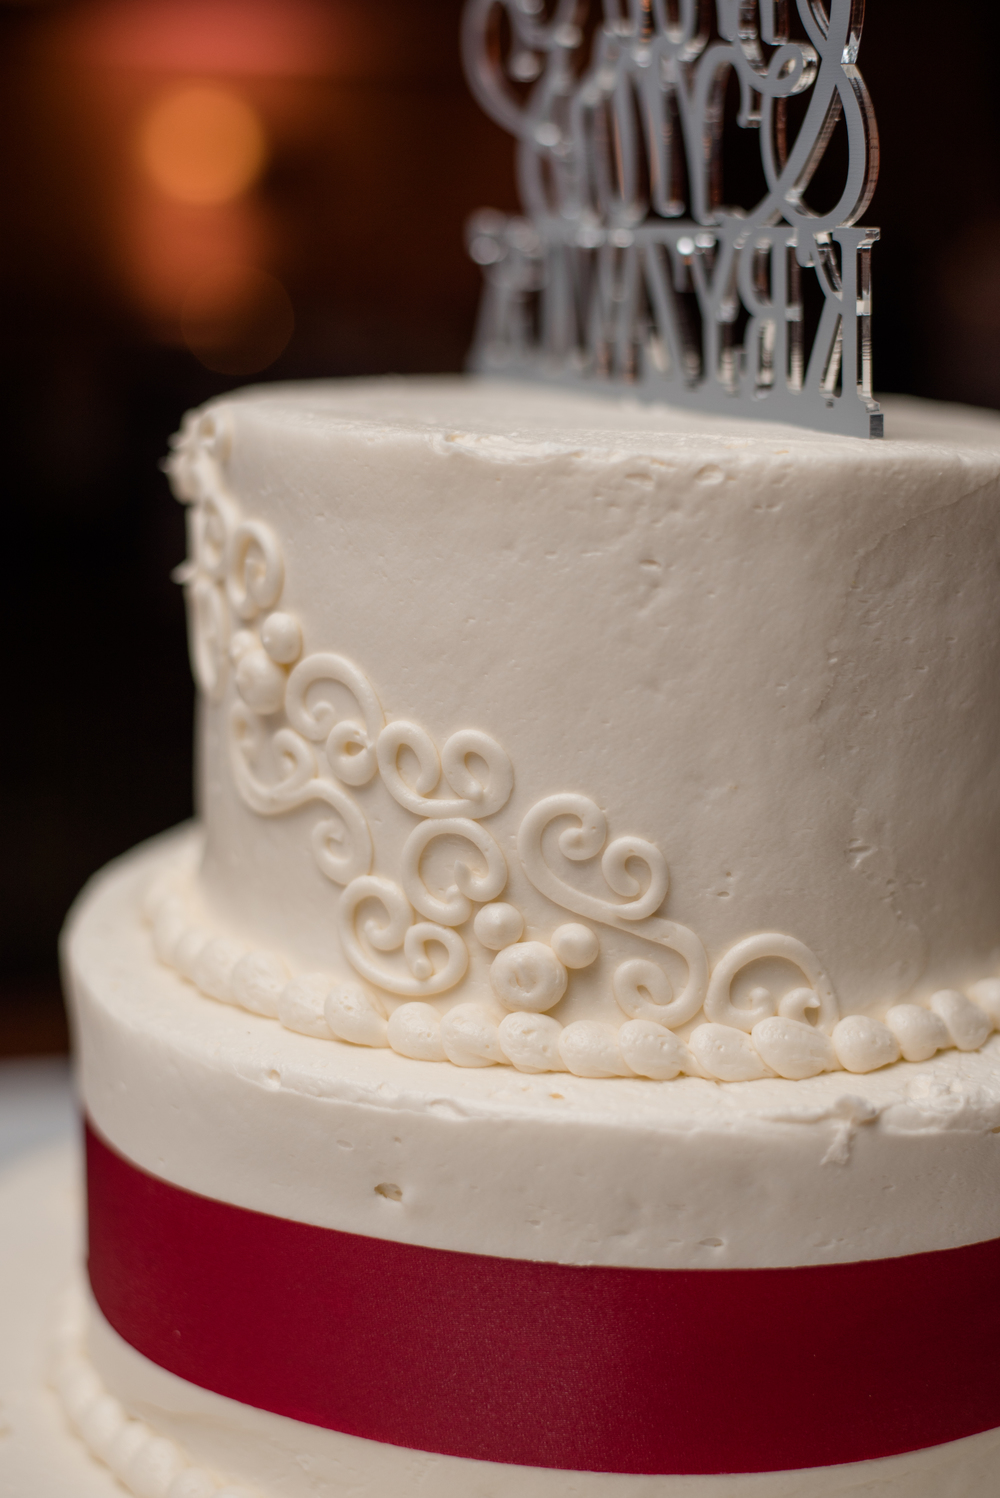 Can you find the hidden mickeys in the cake?!